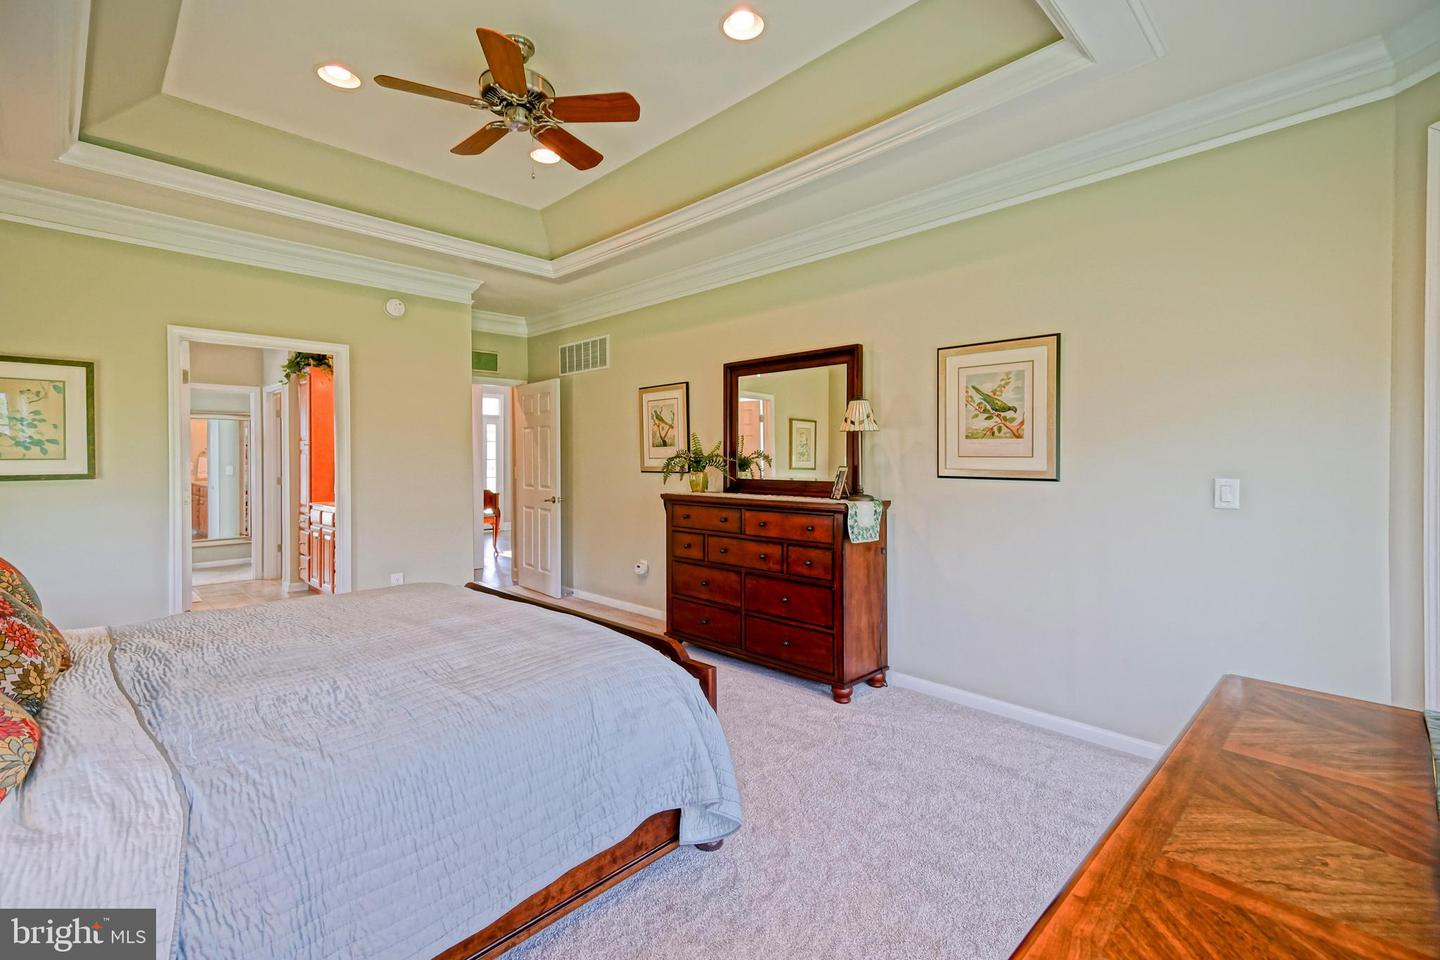 DESU139128-301667381469-2019-08-05-10-43-55 35222 Overfalls Dr N | Lewes, DE Real Estate For Sale | MLS# Desu139128  - Lee Ann Group